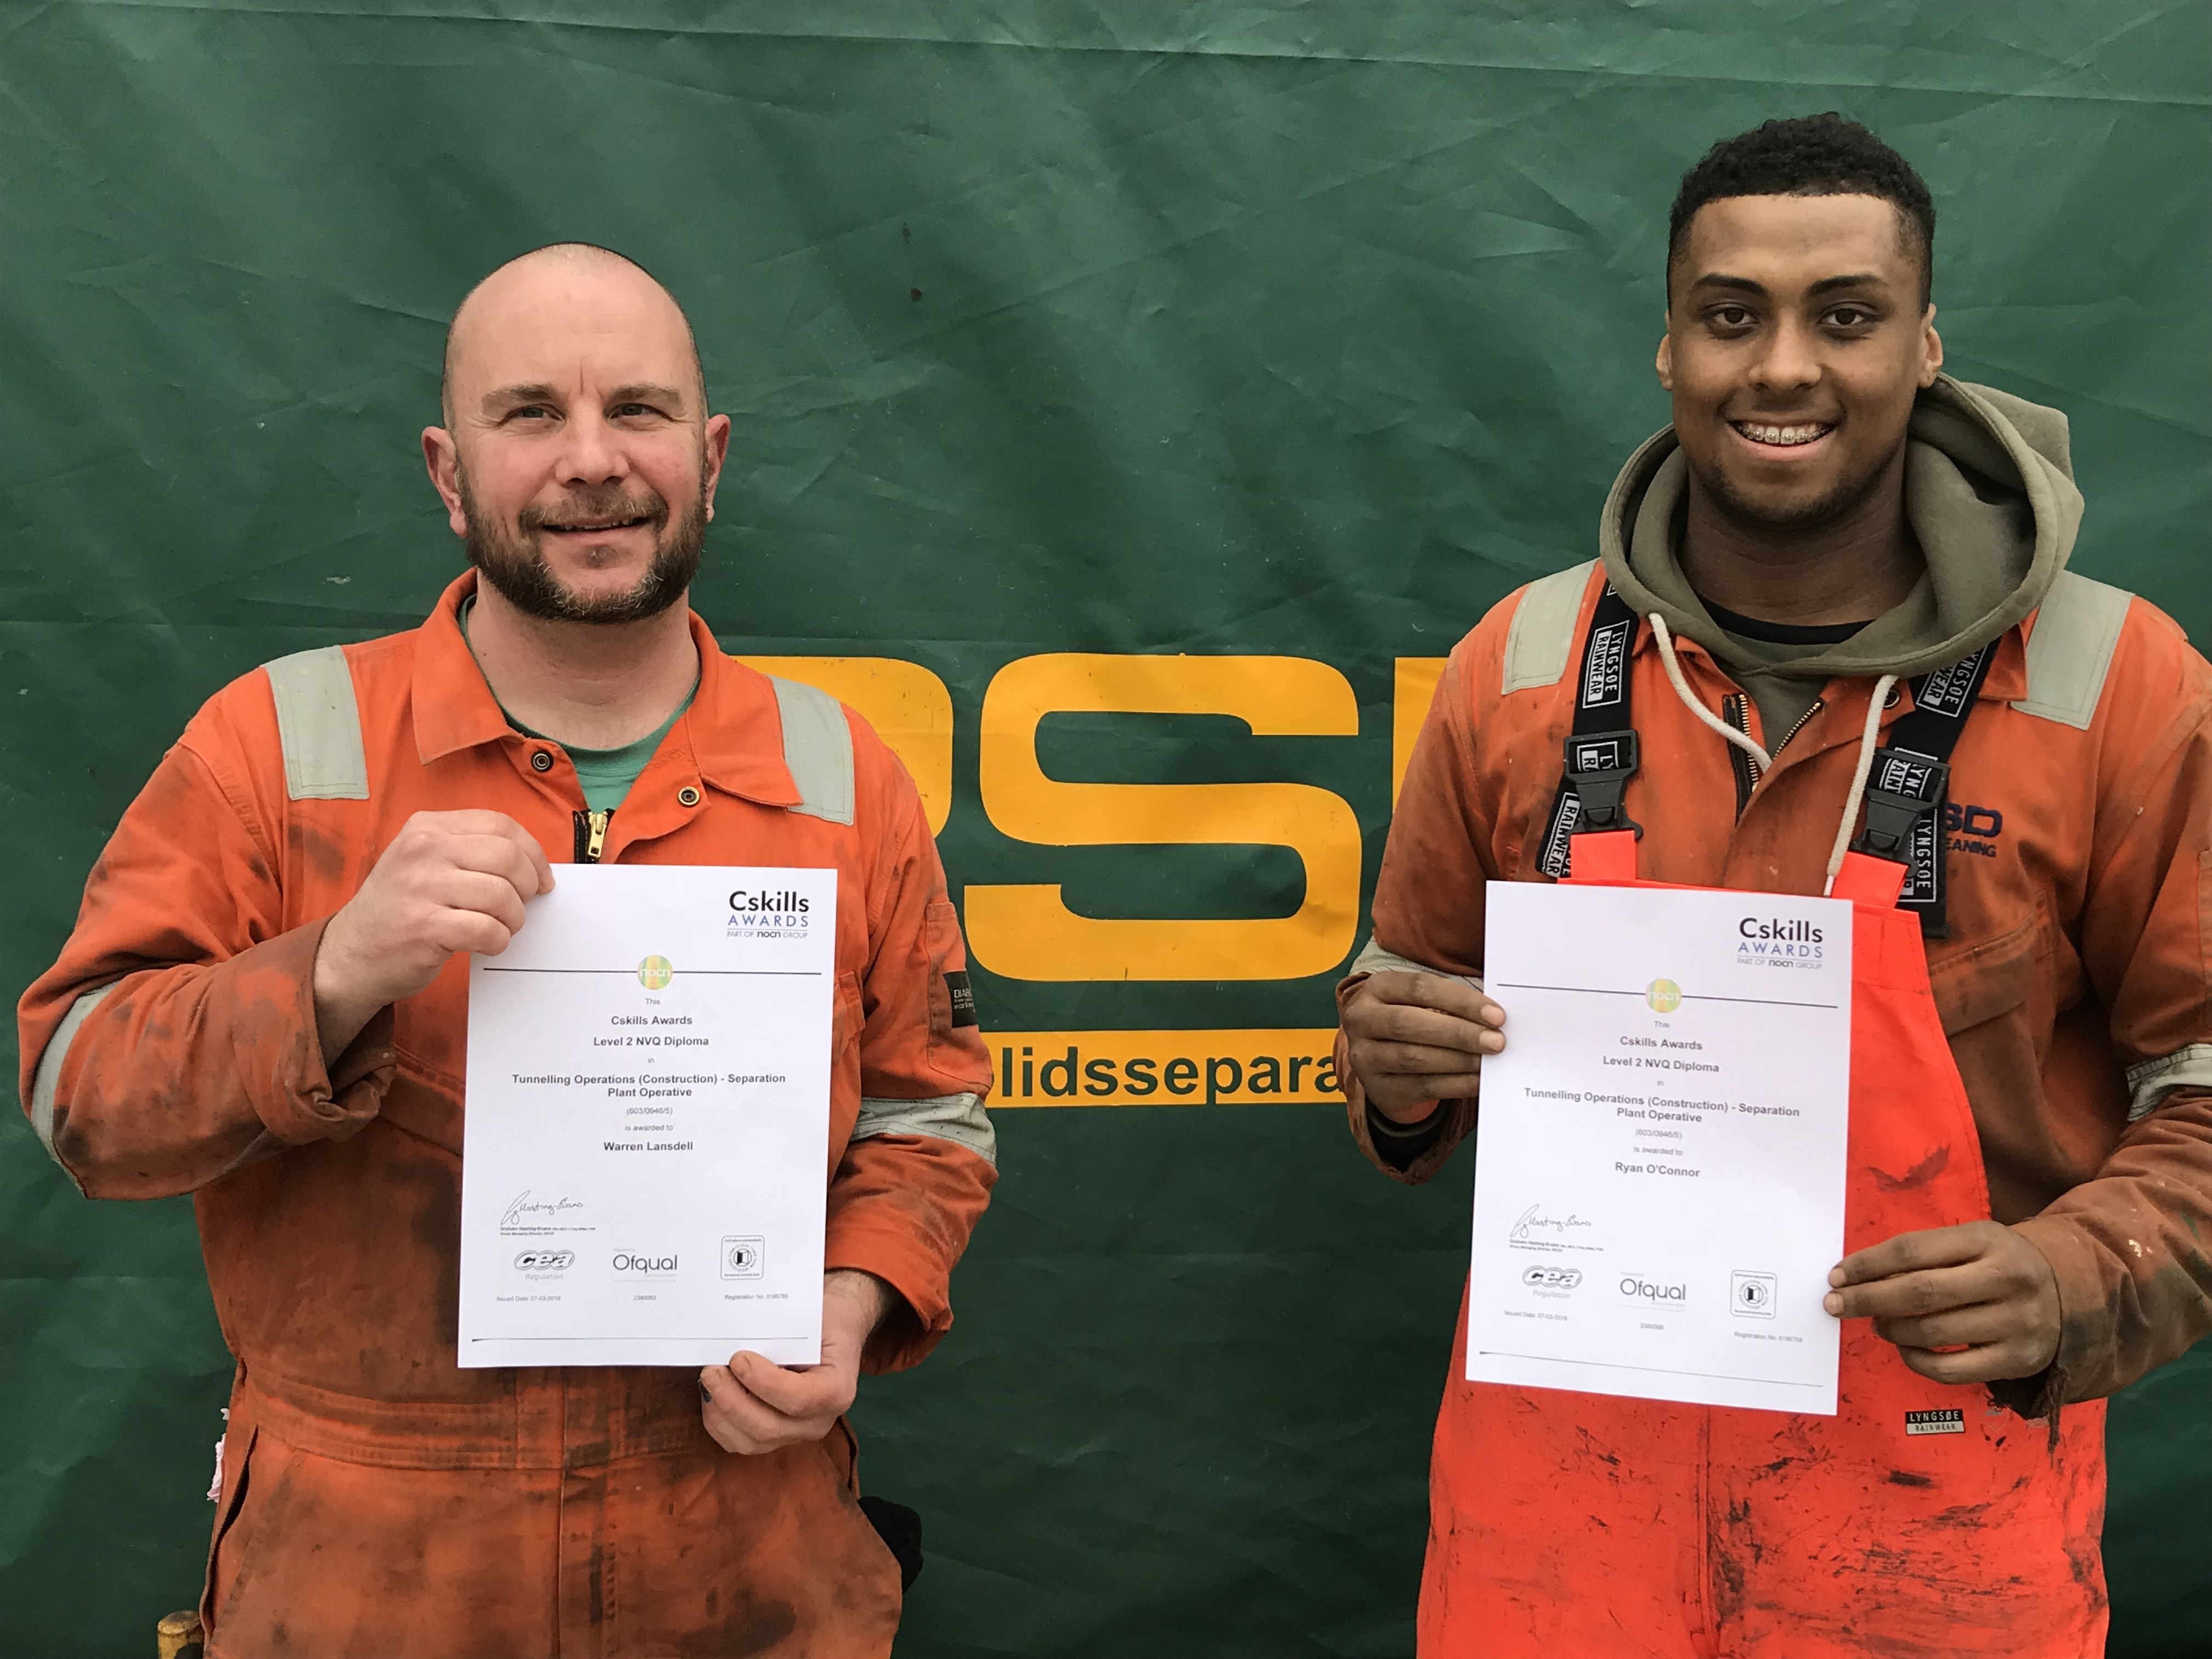 Warren & Ryan with their NVQ certificates